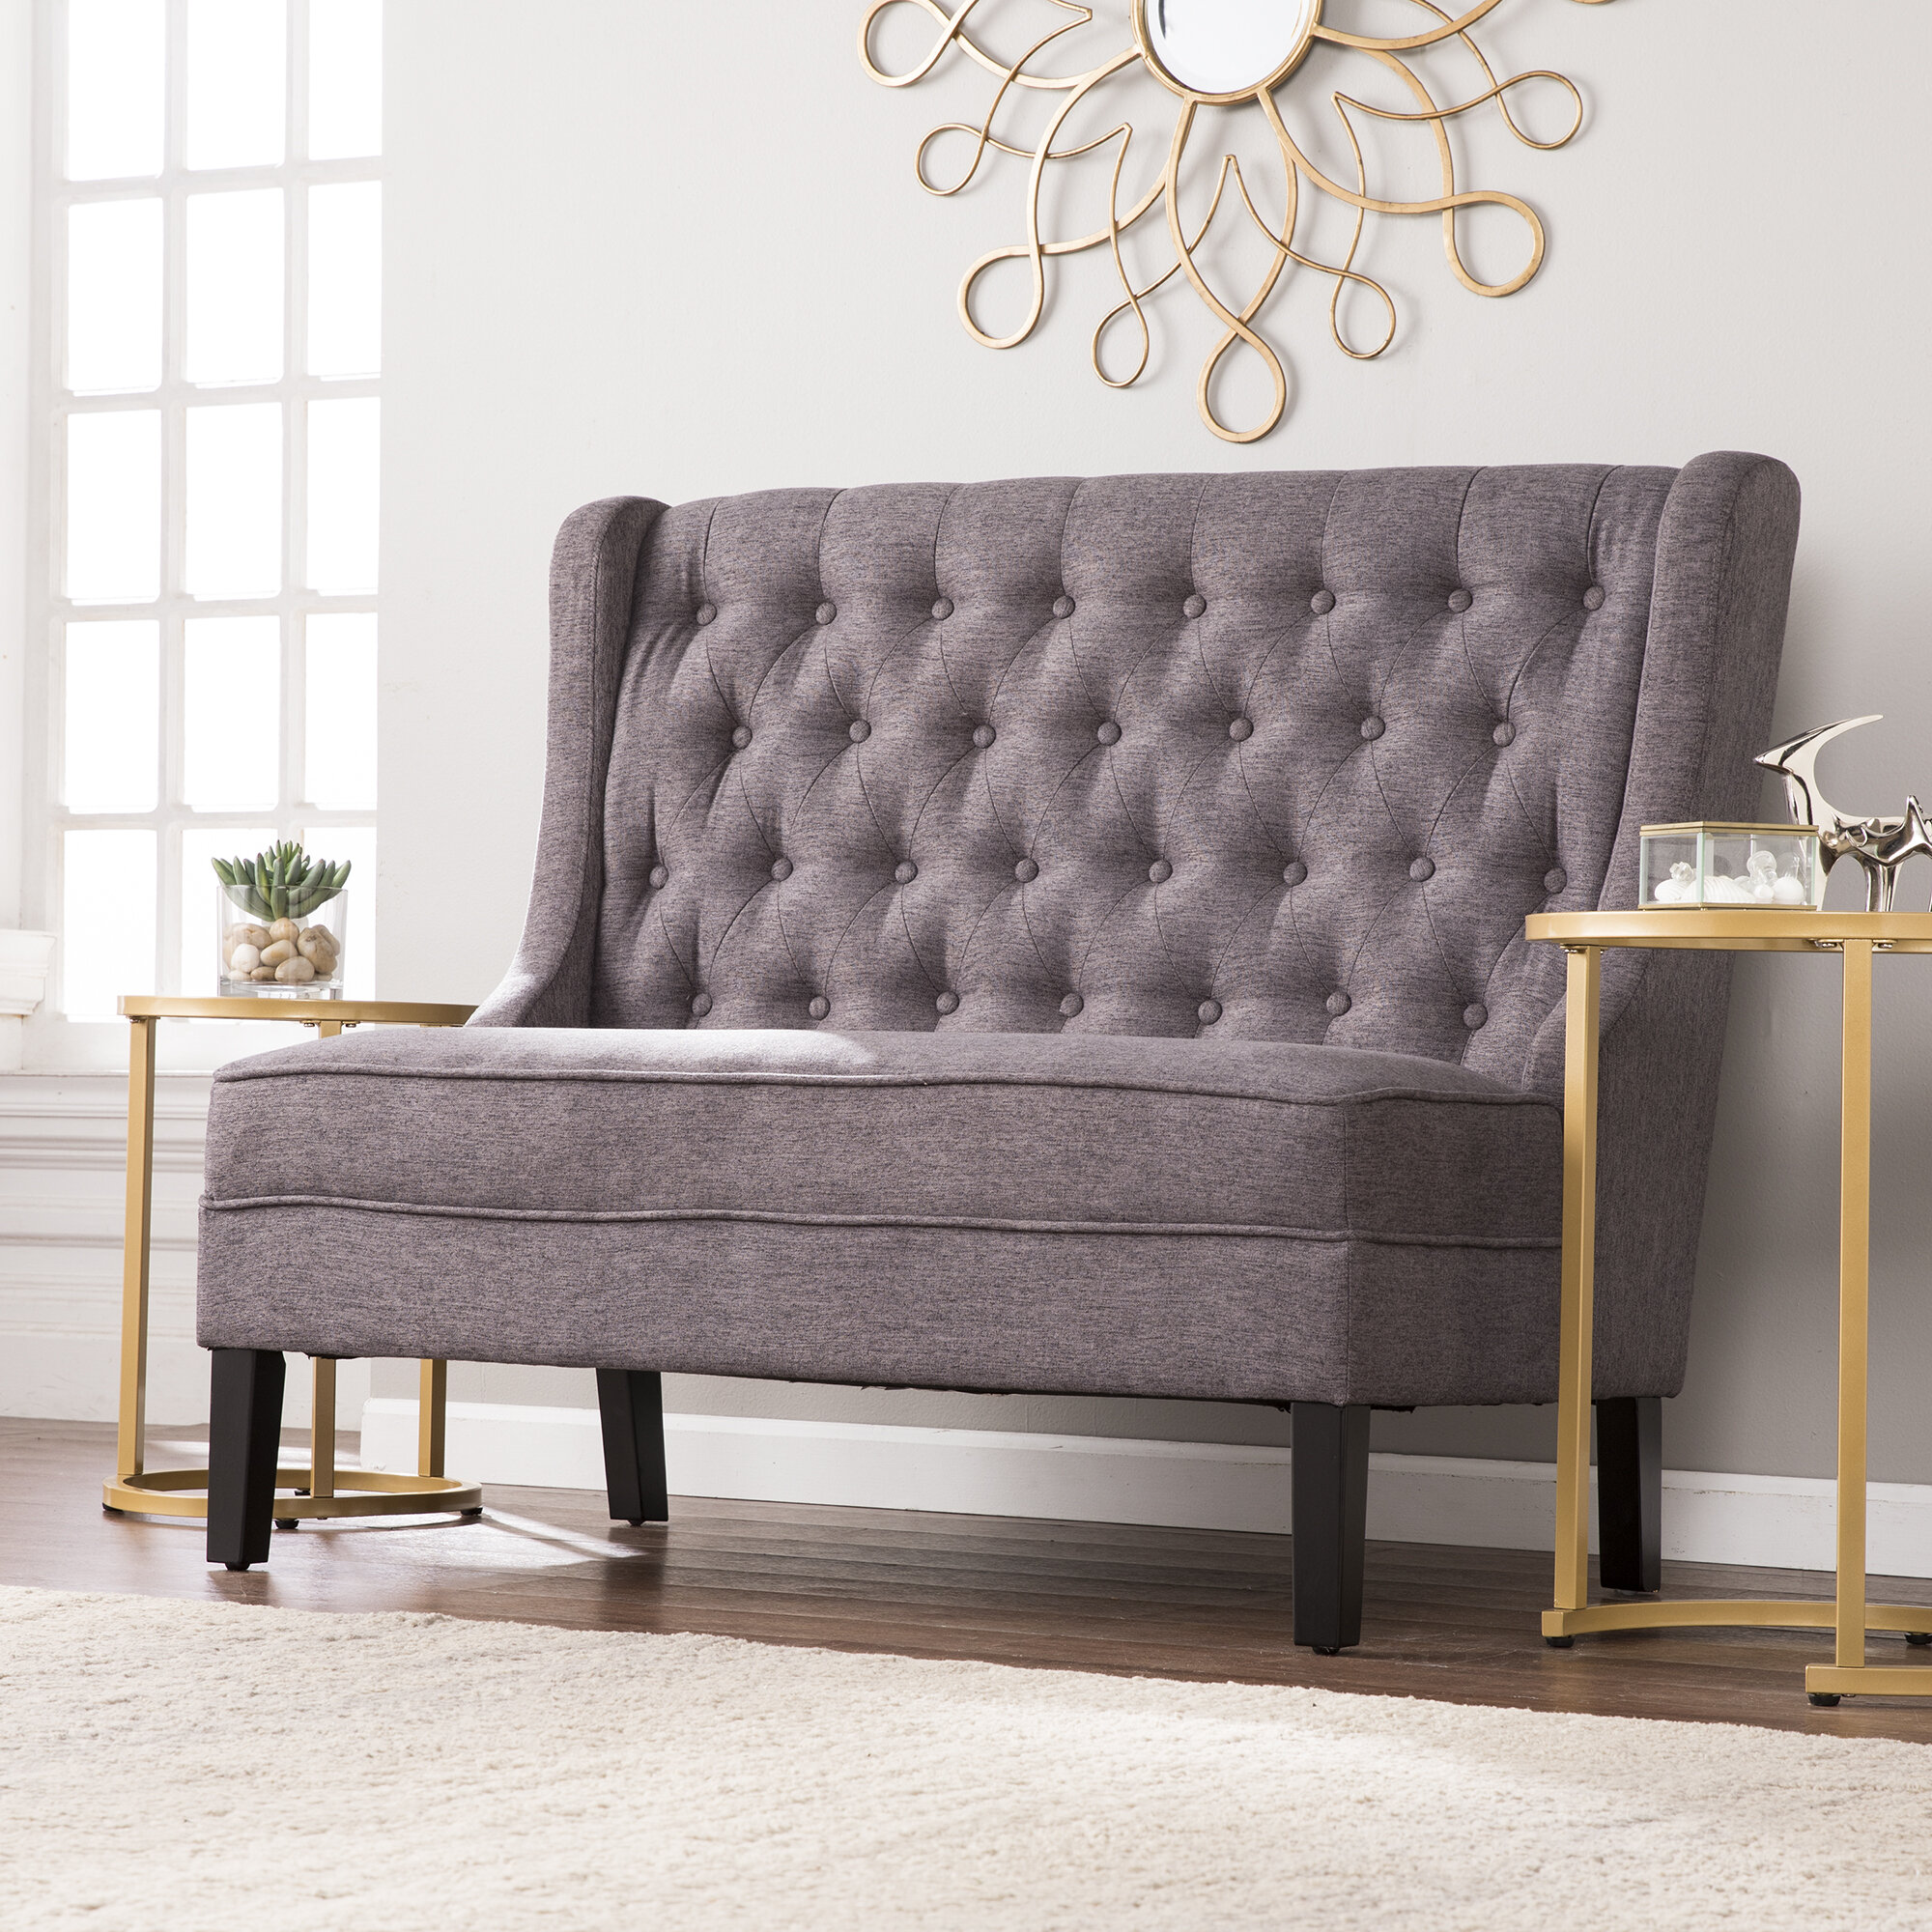 Charmant Halpin High Back Tufted Settee Upholstered Bench